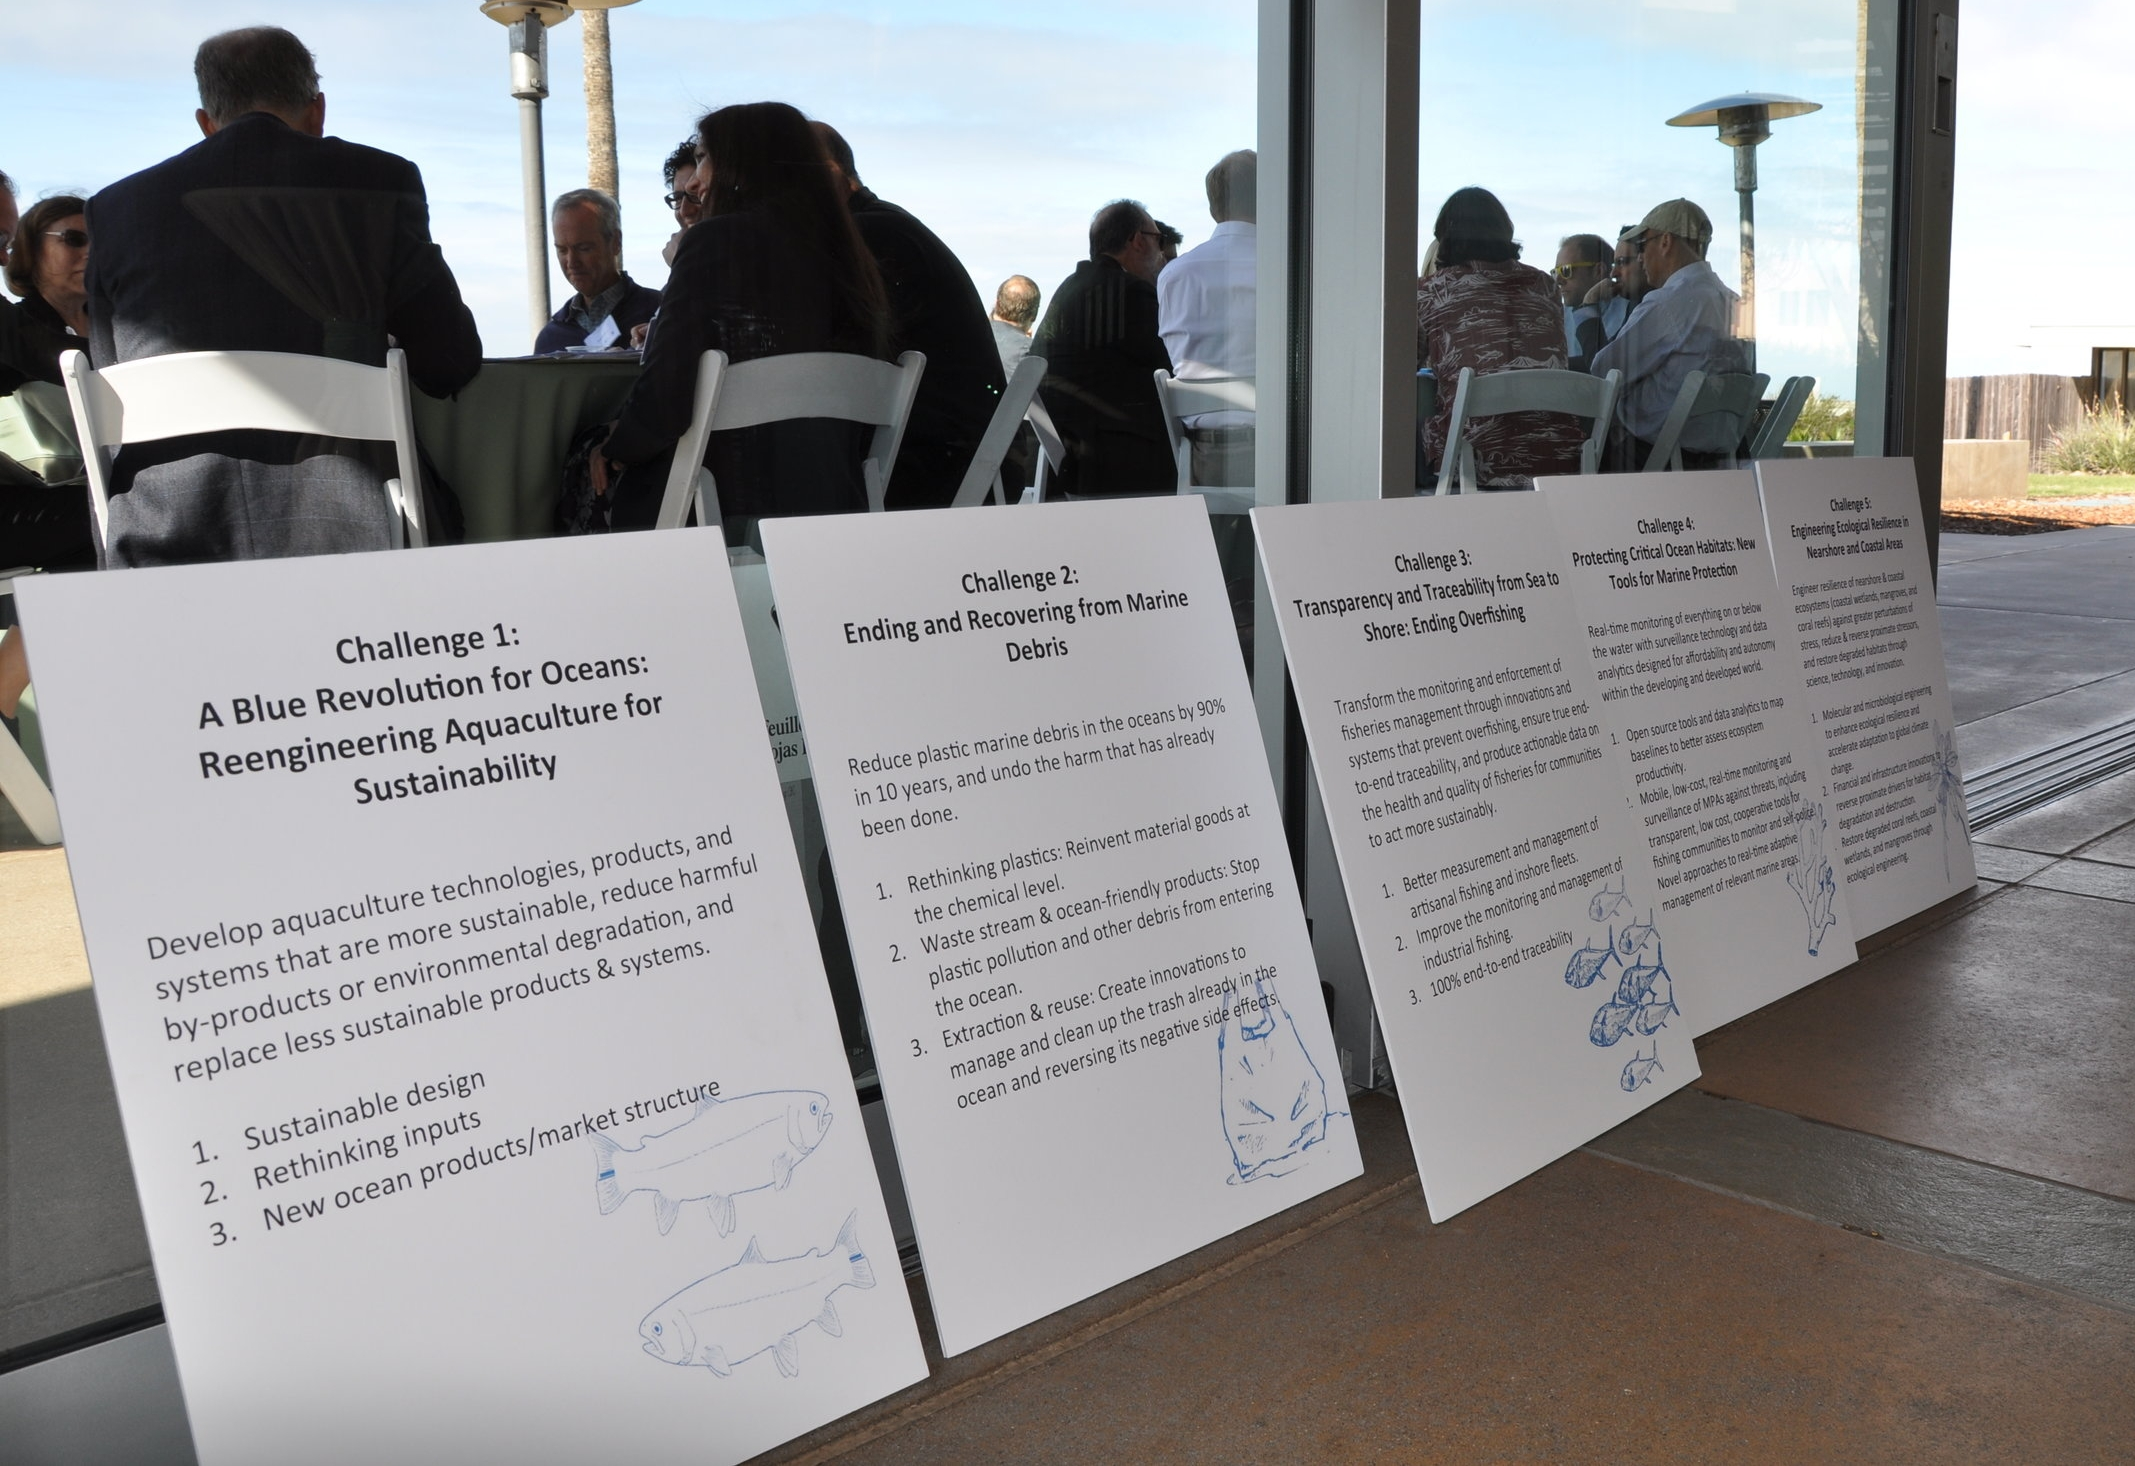 Challenge statements at the Oceans Big Think, November 2015.